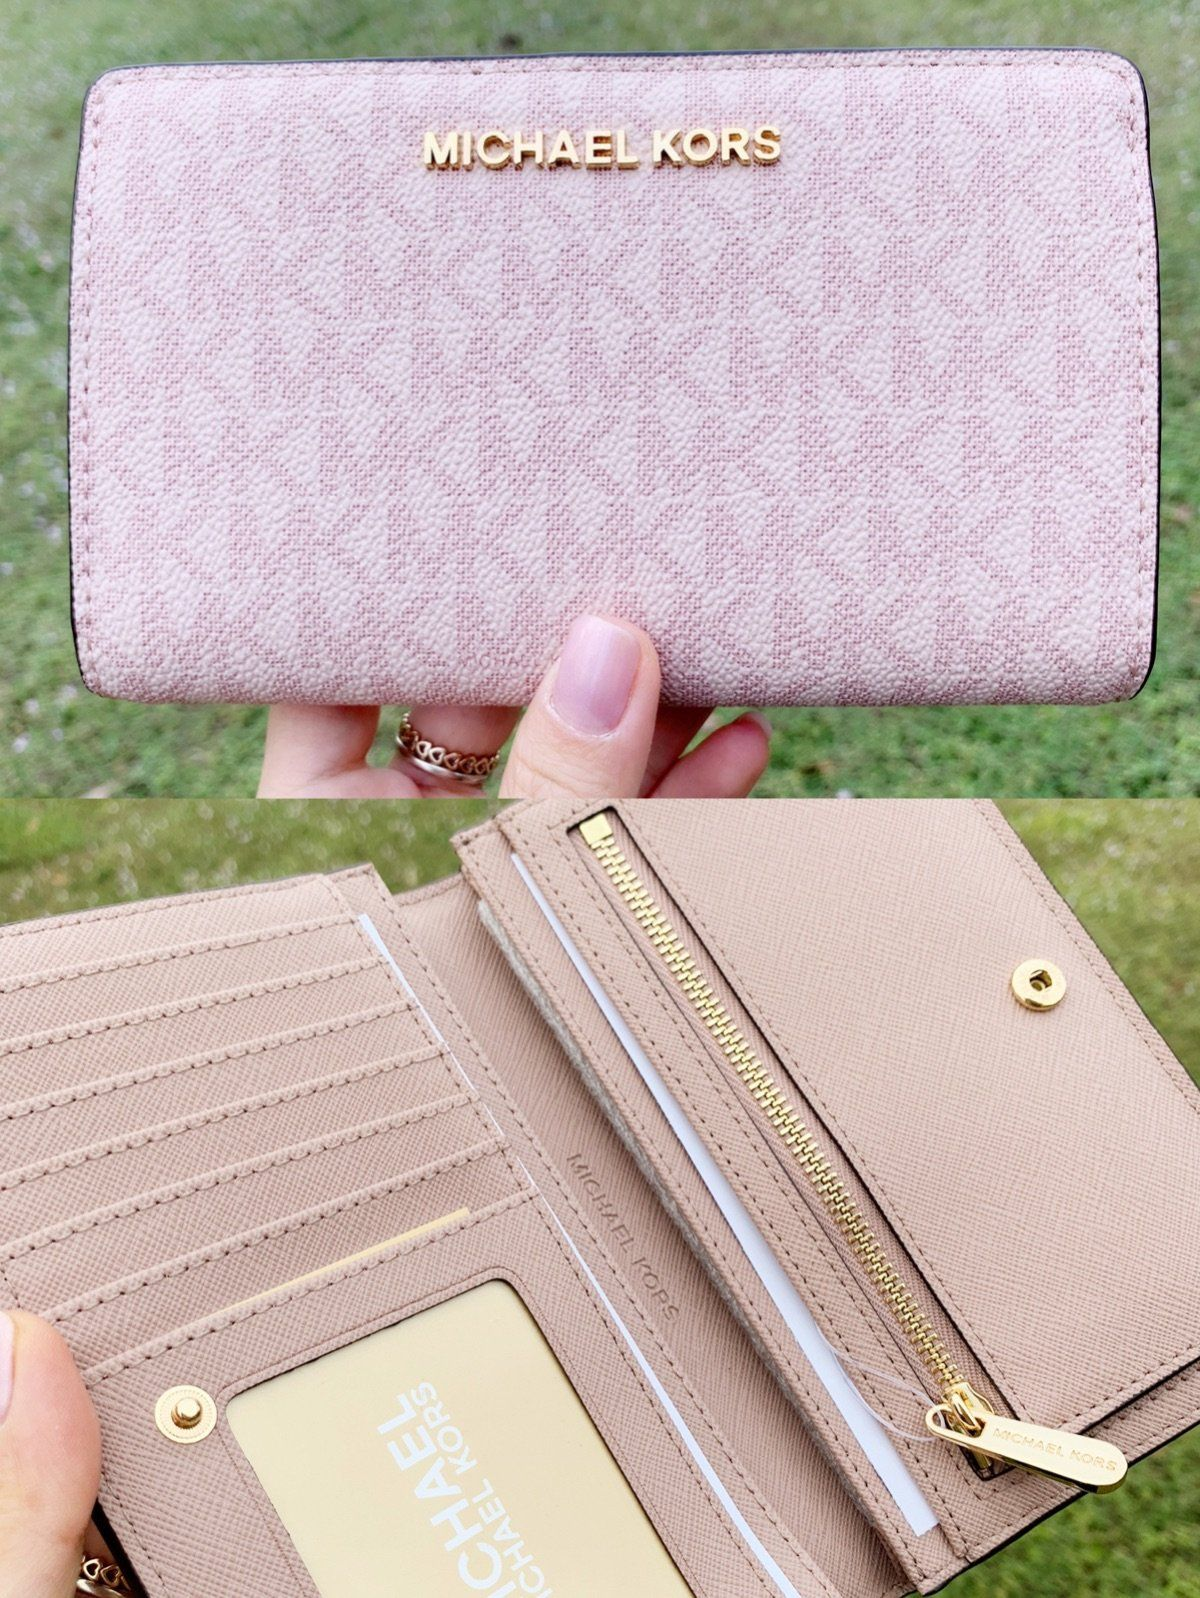 378947c6f225 Michael Kors Jet Set Travel PVC Slim Bifold Wallet Fawn MK Ballet Pink  #poshfashion #rated #poshpackages #GabysBags #mercariapp #ebaystore  #topratedseller ...